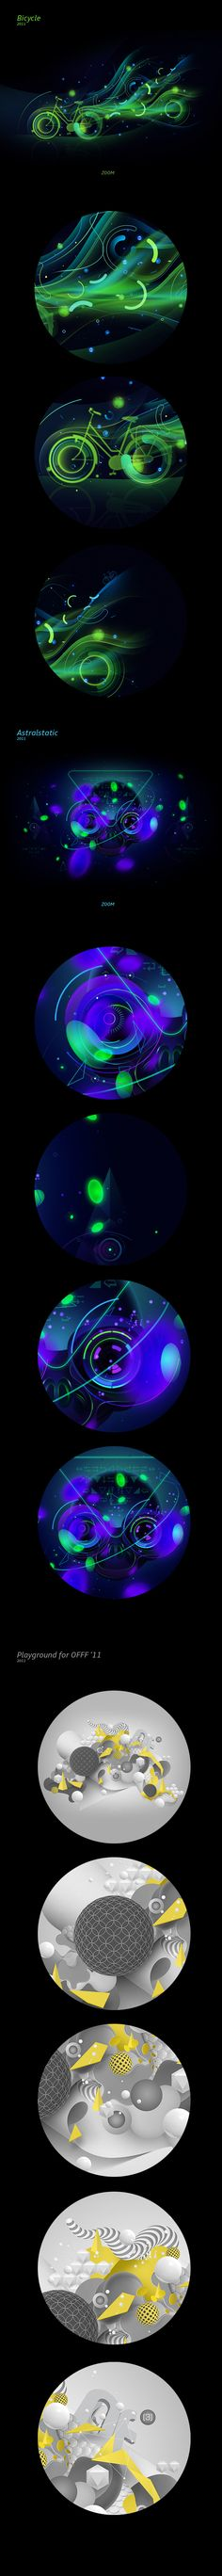 Fresh Abstract by Cyrill Clunev, via Behance